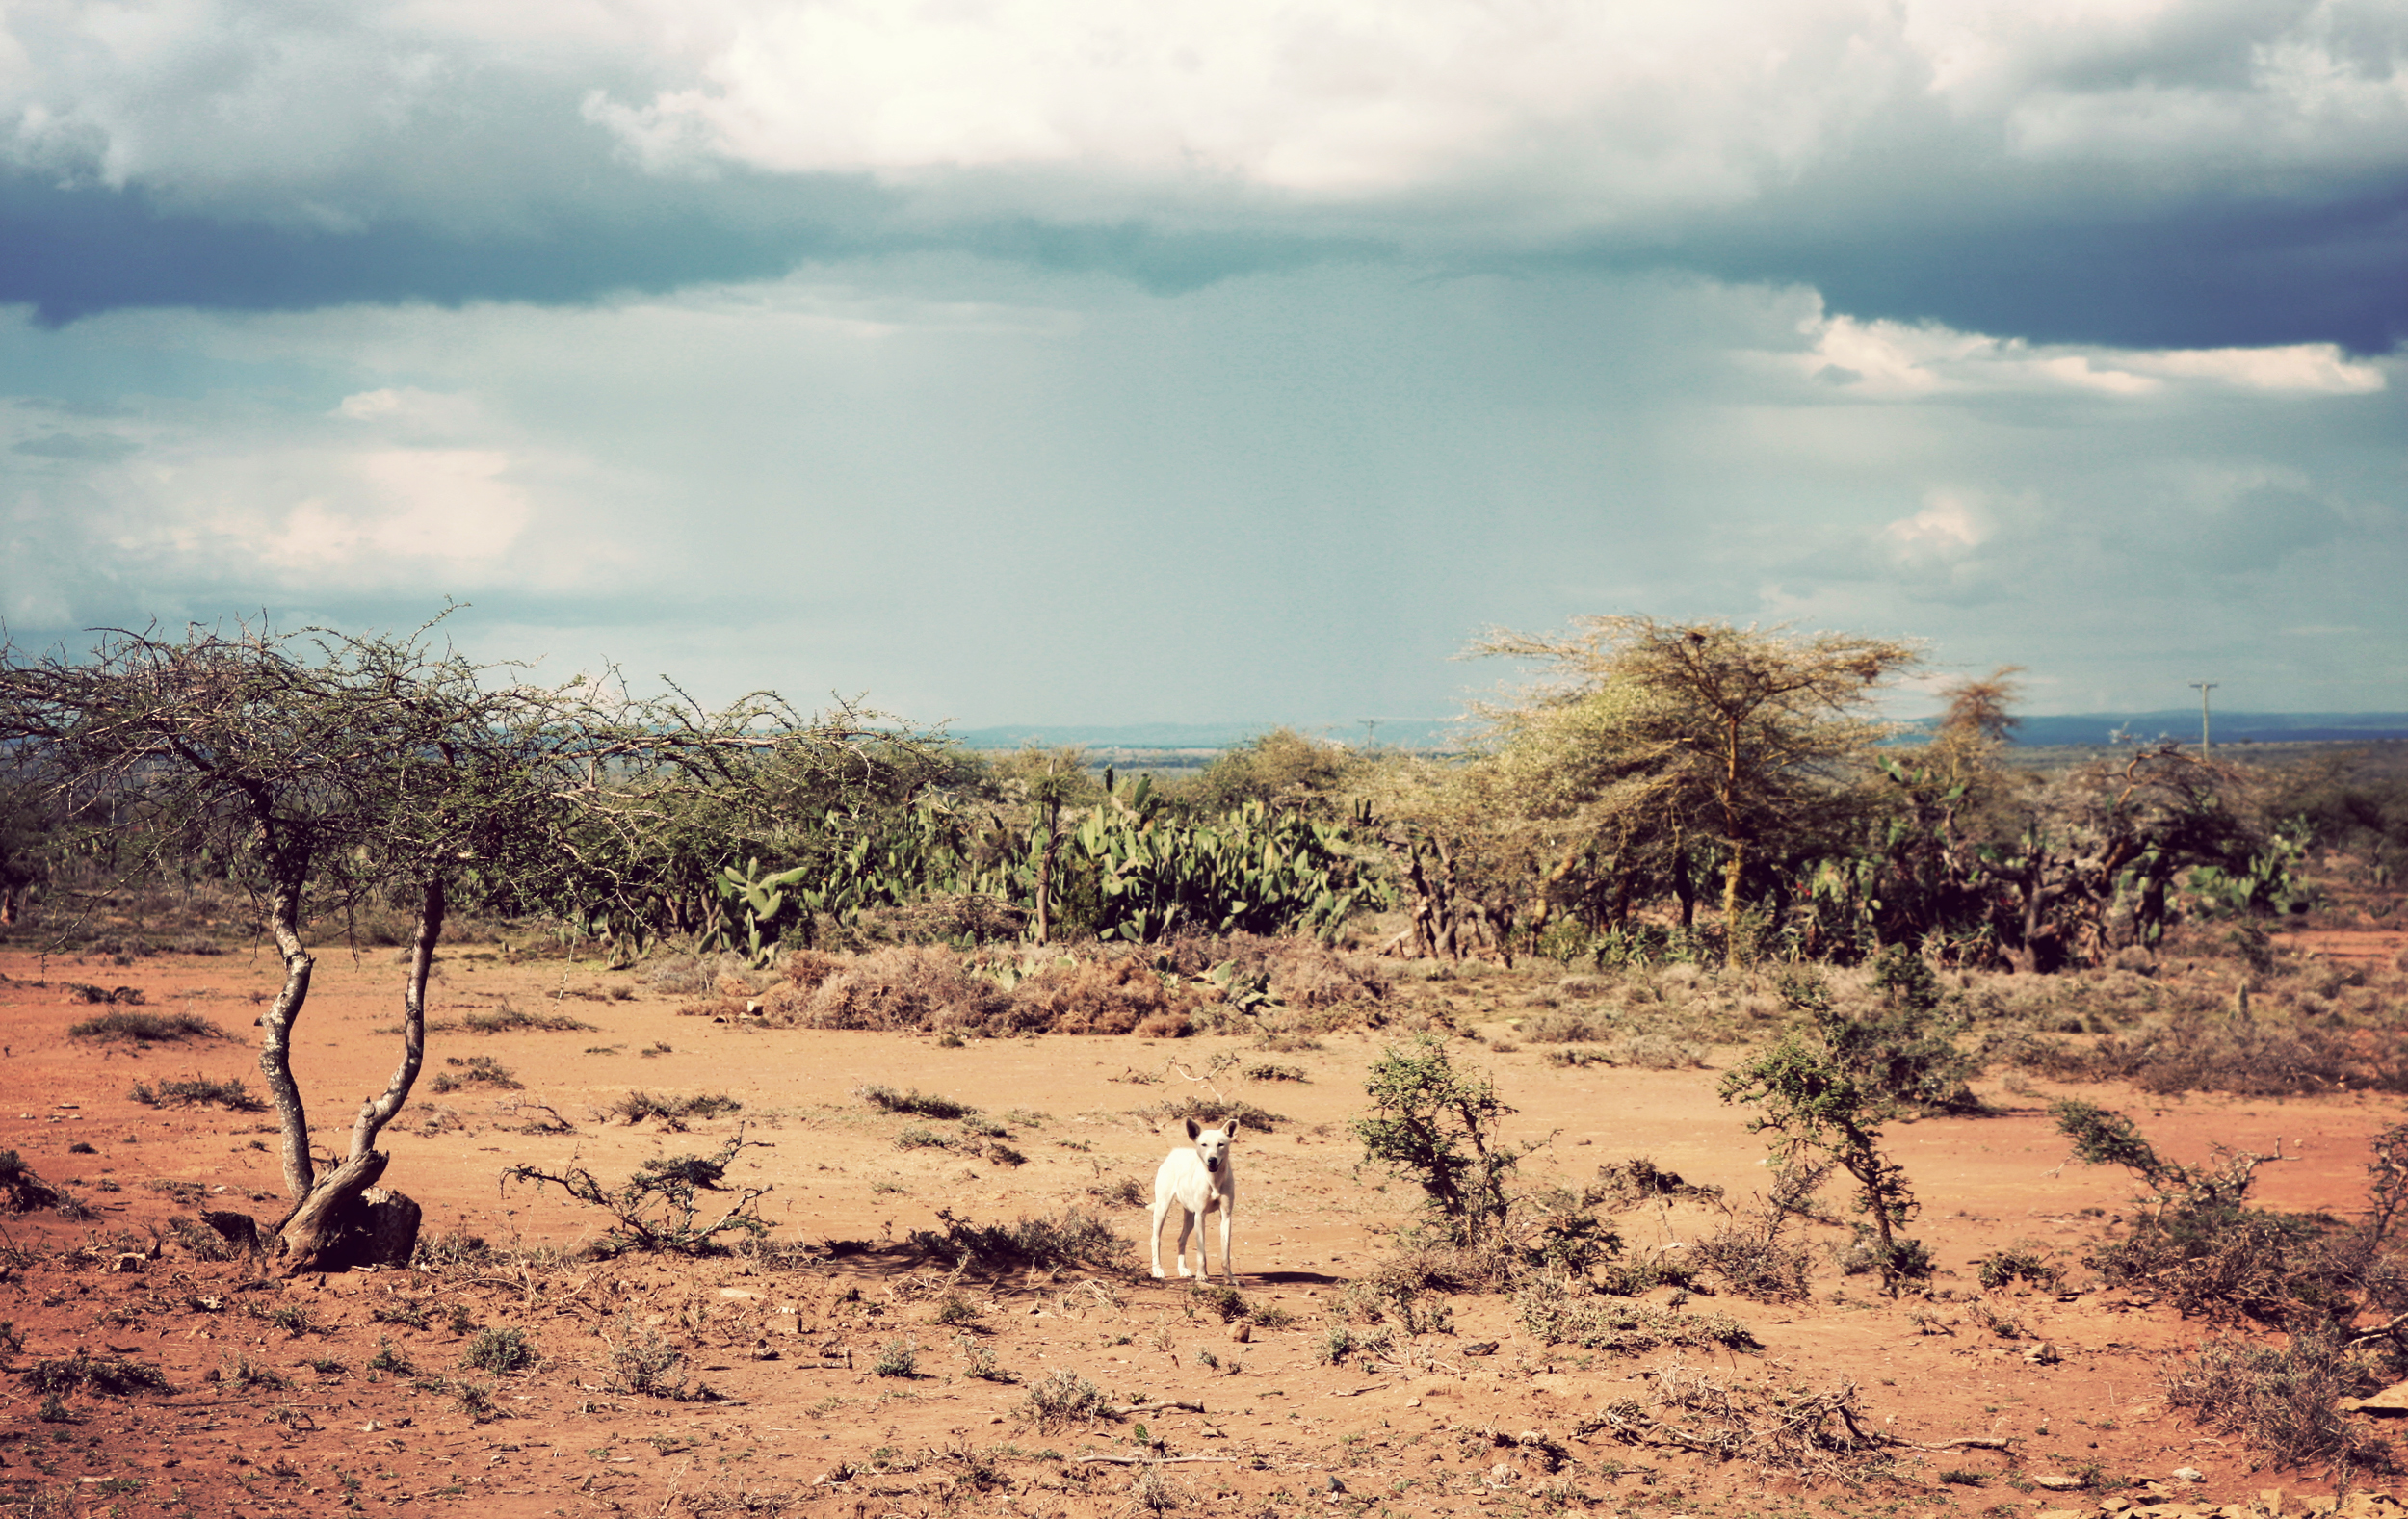 Cute little Maasai dog looking for some tasty treats